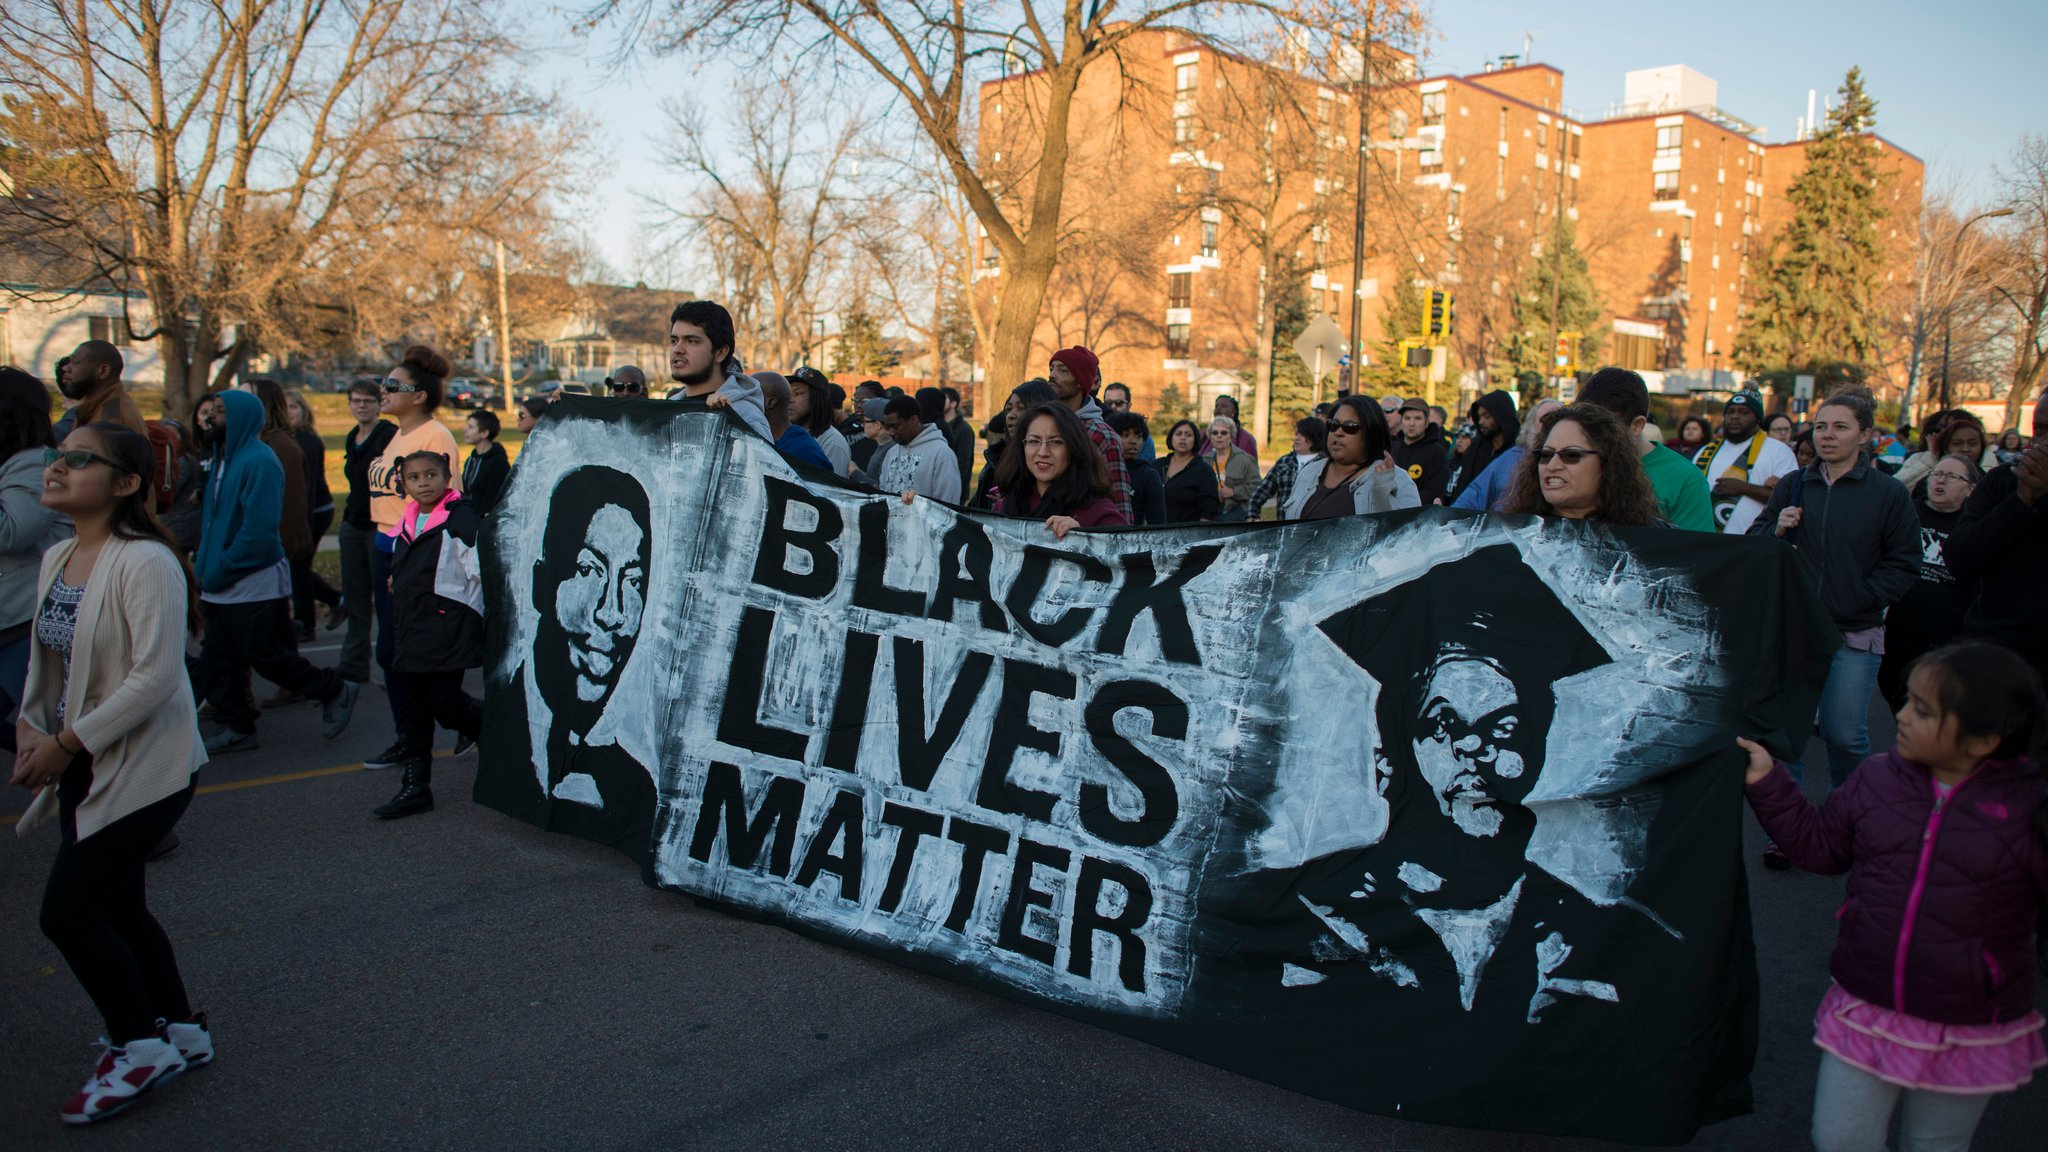 Protesters march in response to the death of Jamar Clark, who was shot by Minneapolis police in November 2015. (Fibonacci Blue / Flickr)